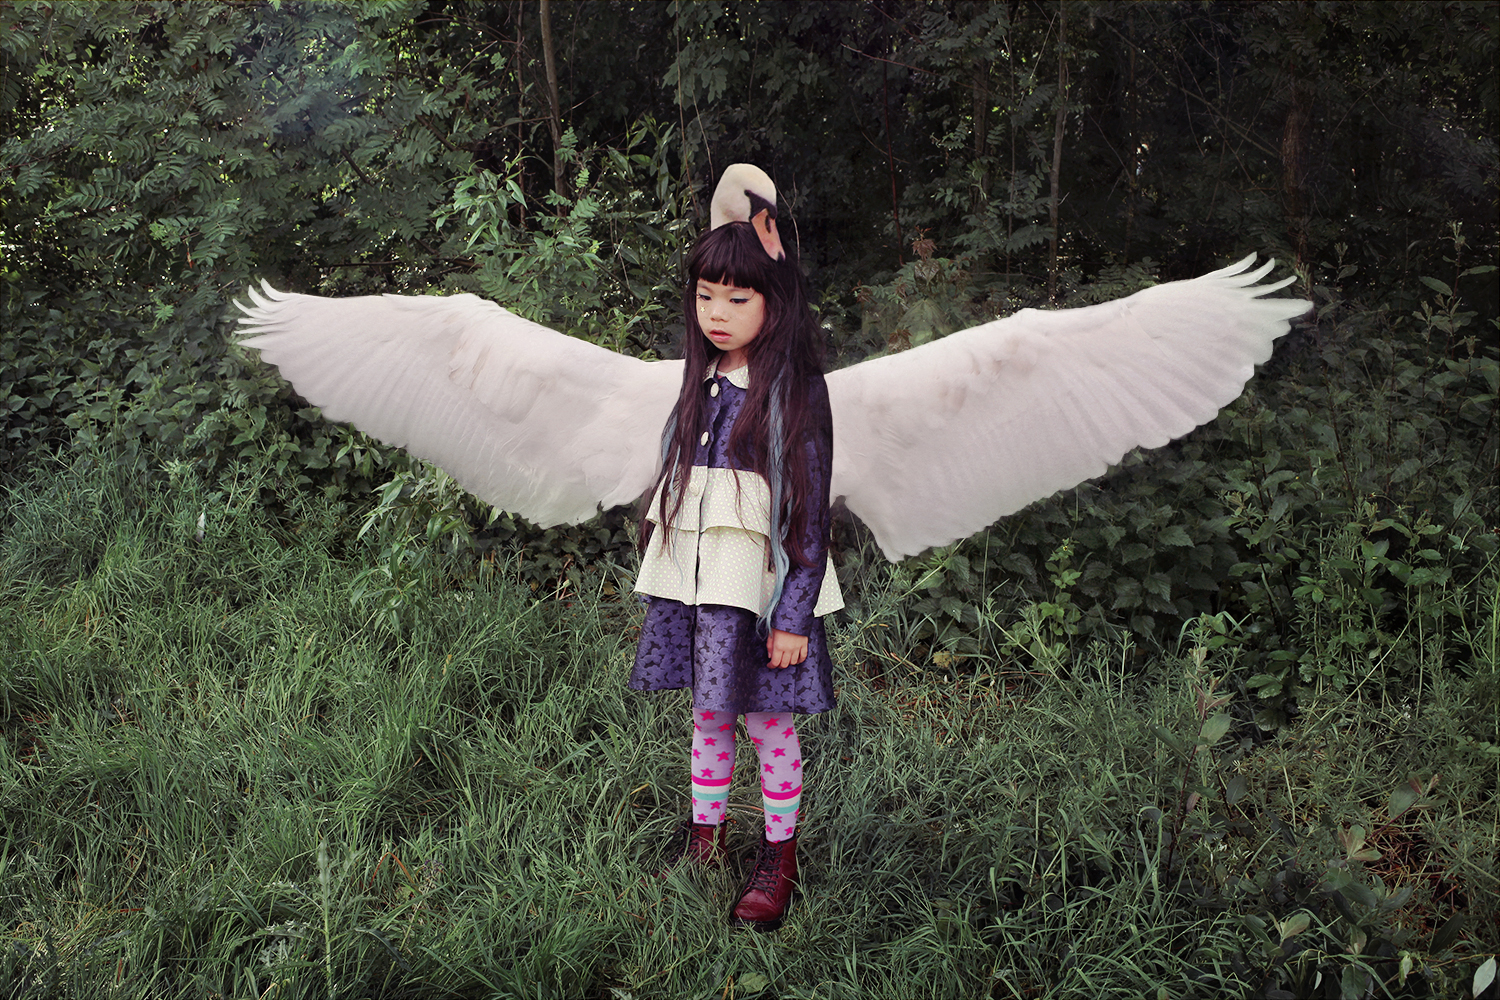 kiki with wings landscape.jpg